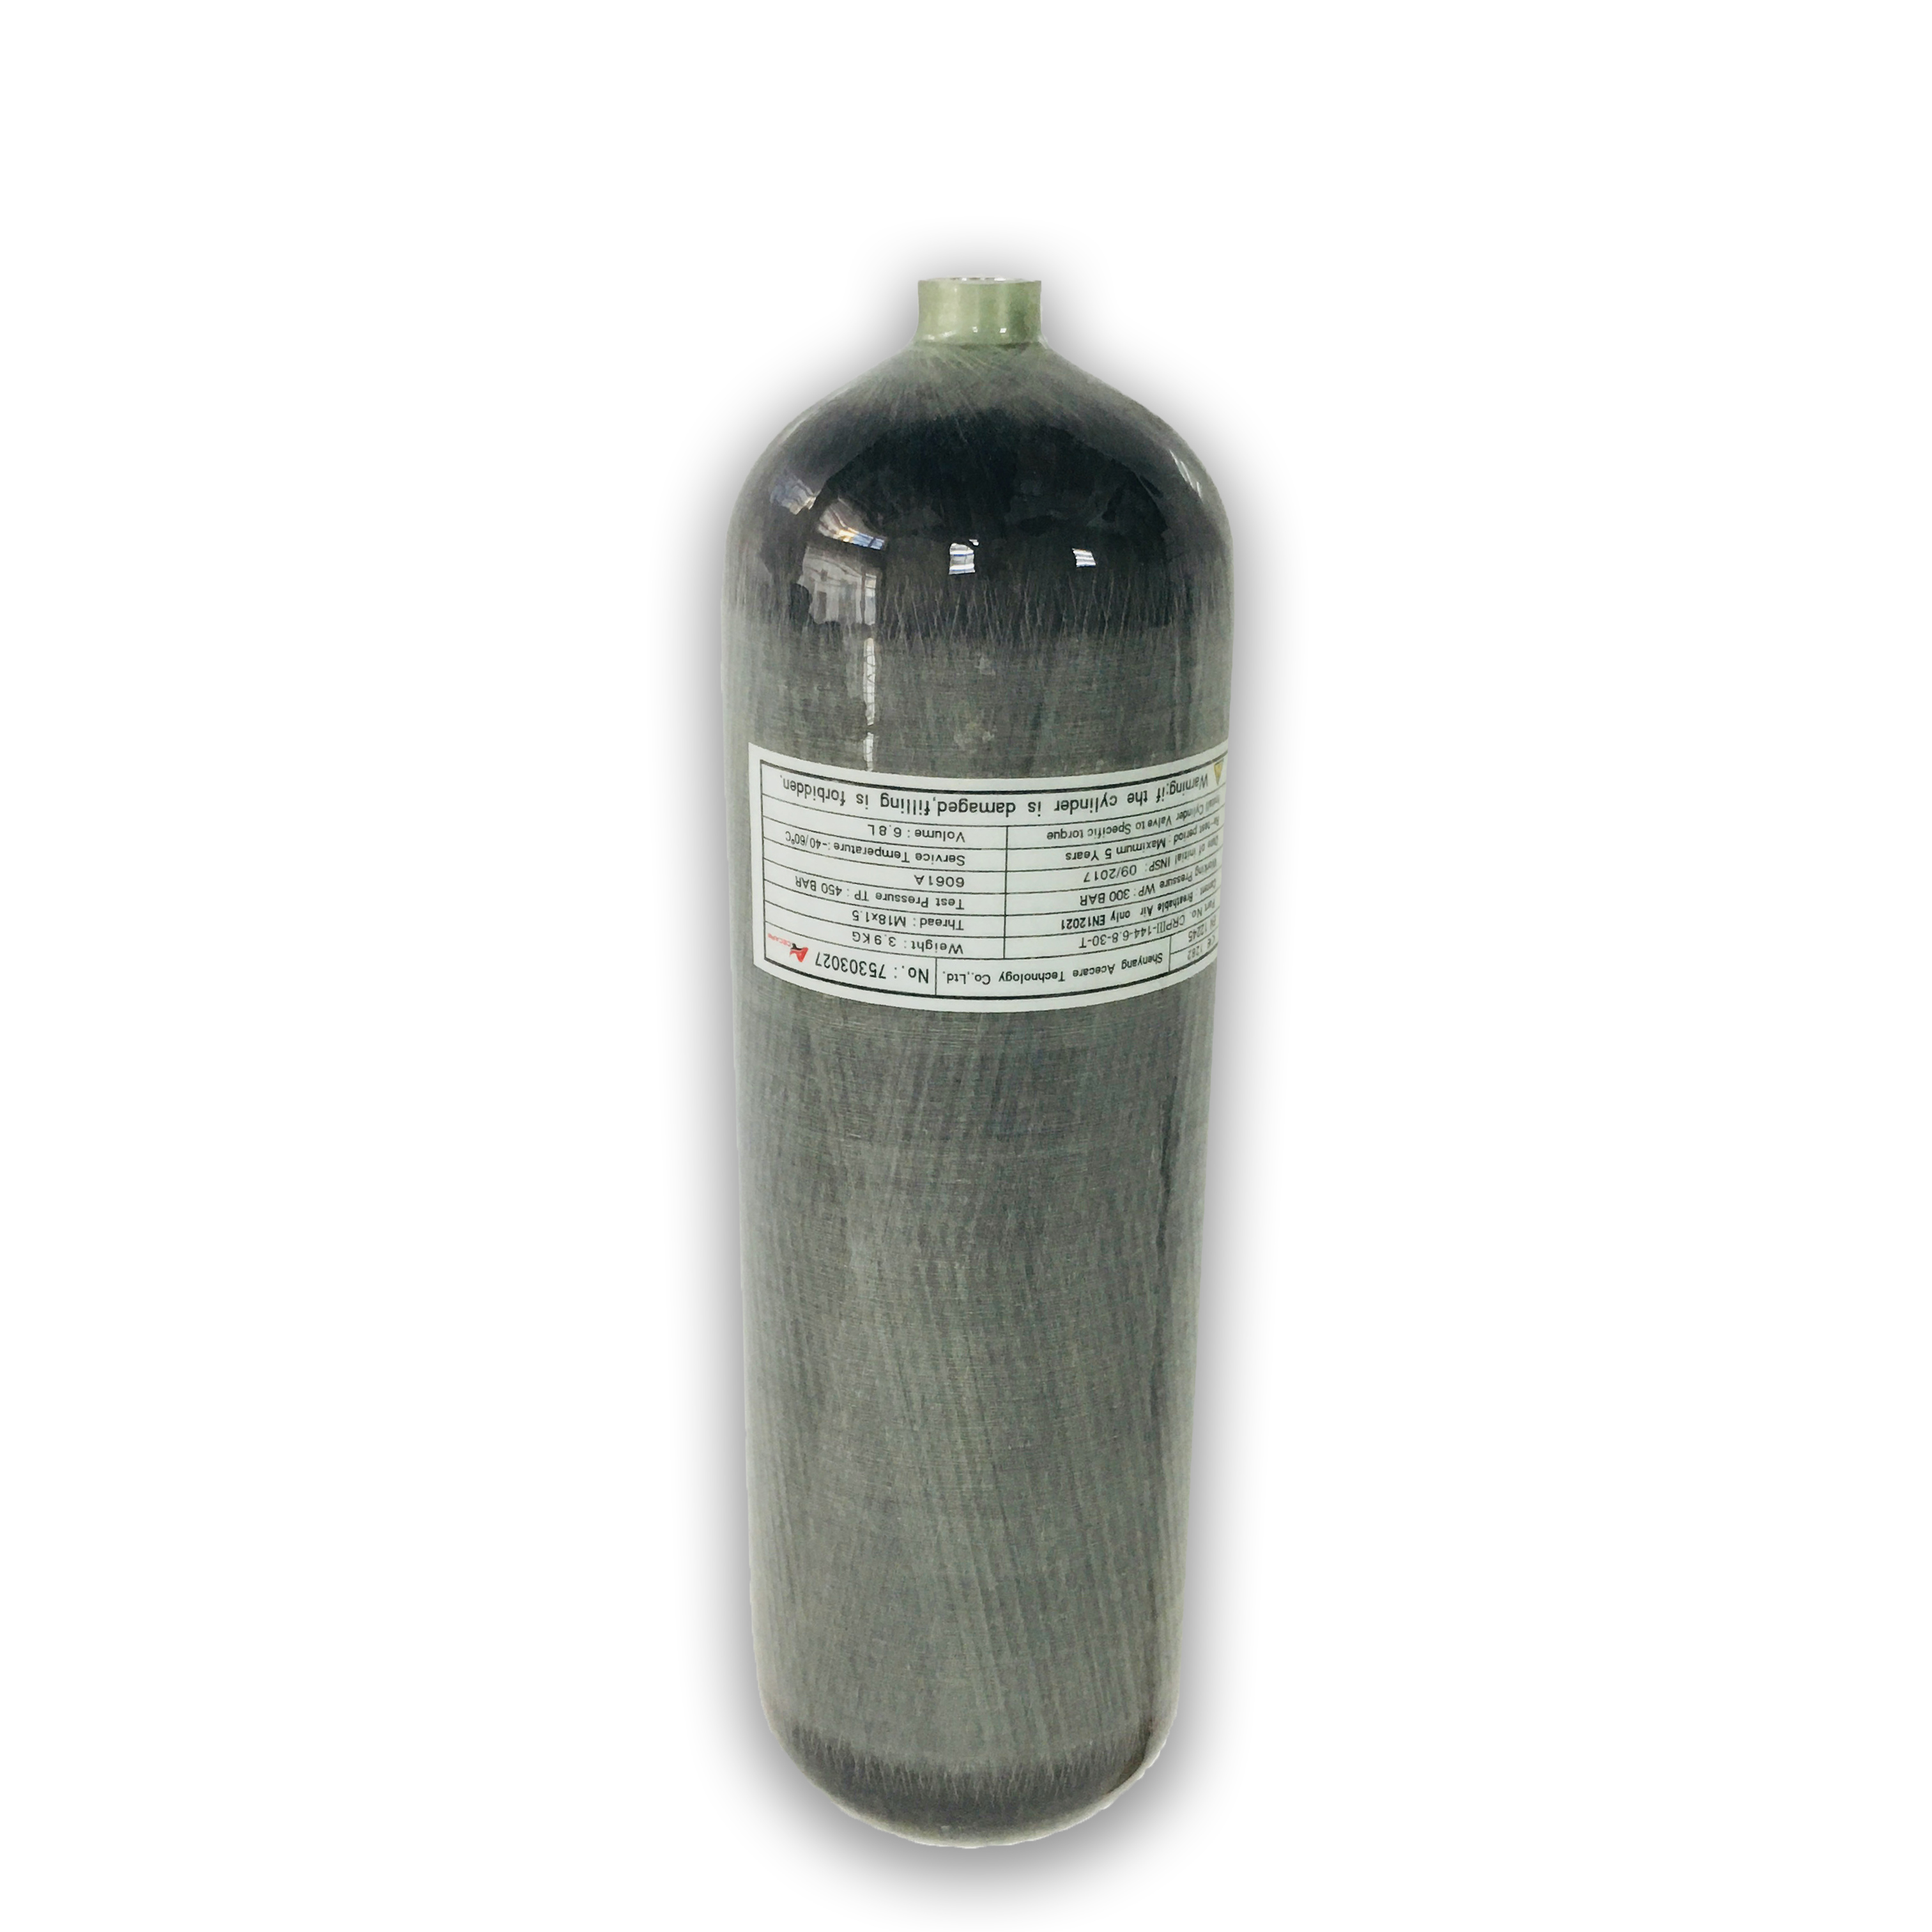 AC168 2019 6.8L Compressed Air/Paintball/PCP Cylinder/Accessories/Bottle/Tank For Target Shooting Airsoft/Airgun Sports Tactical